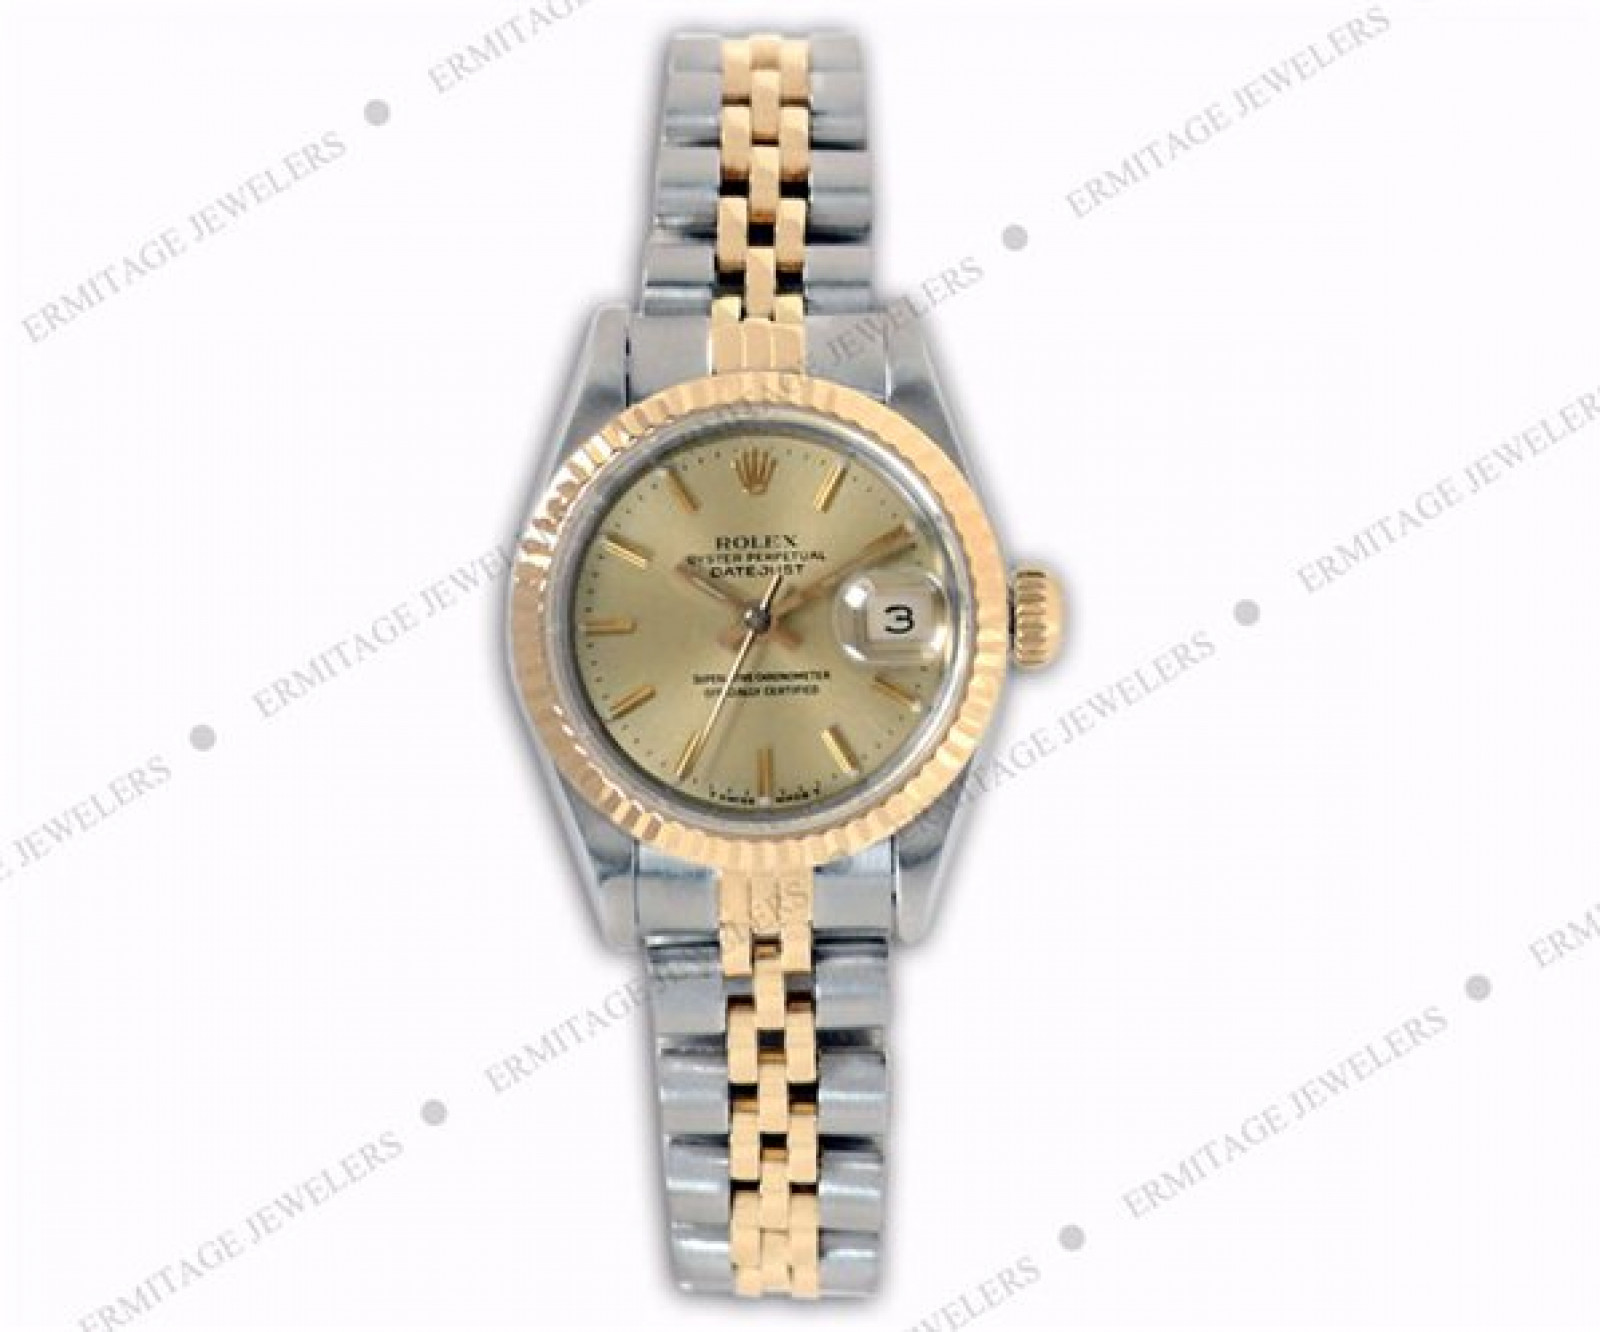 Pre-Owned Rolex Datejust 69173 Year 1983